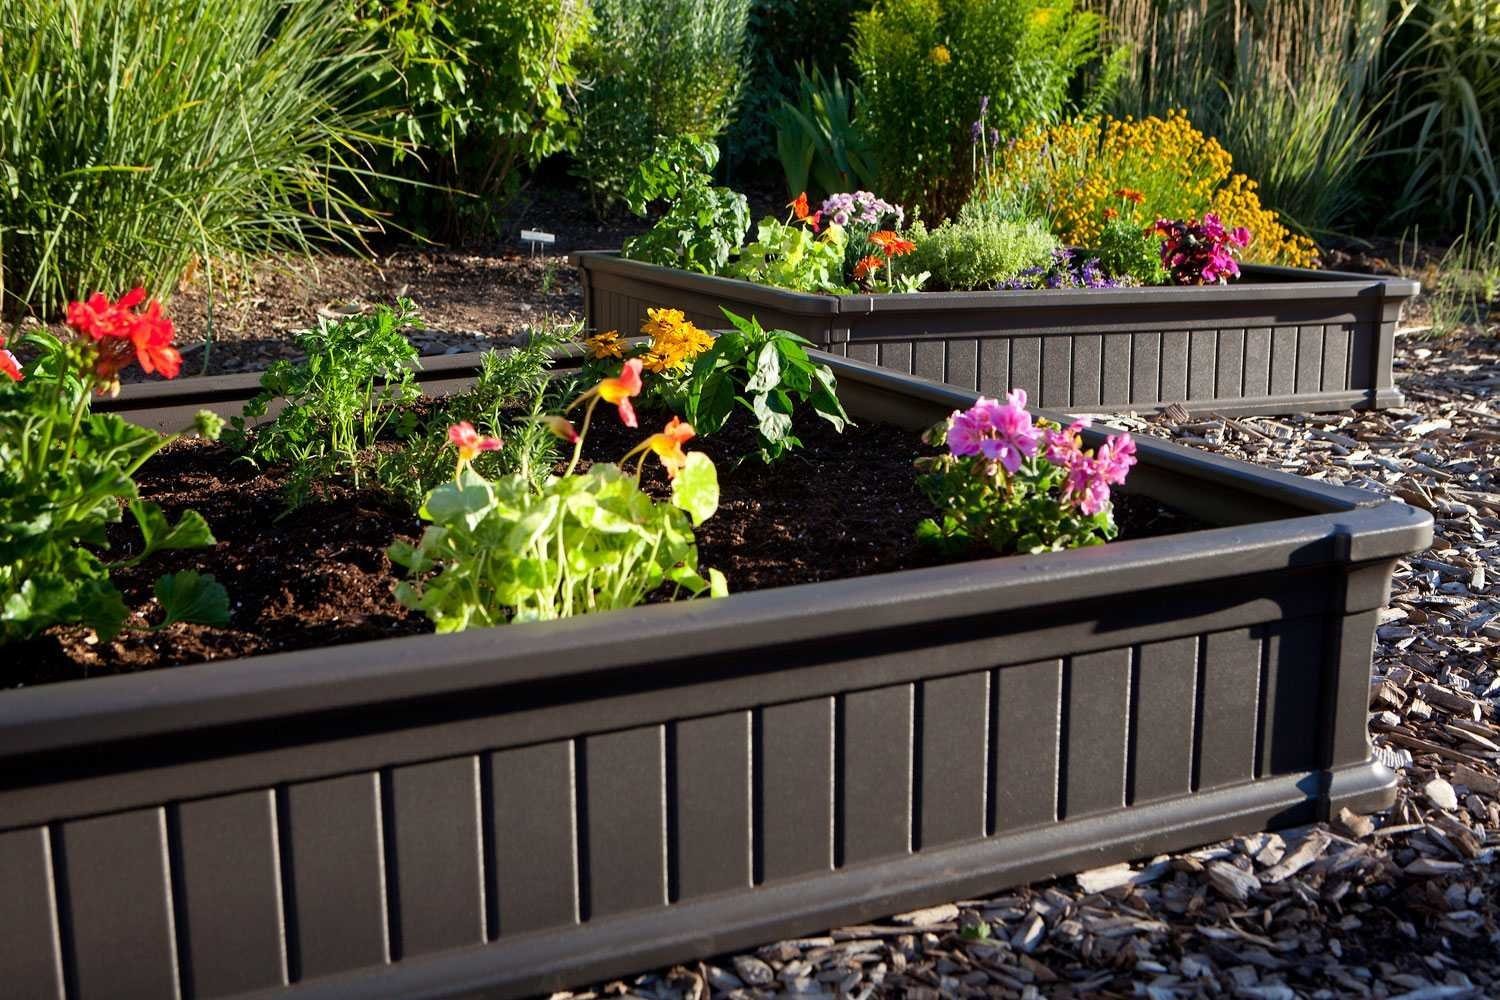 diy-raised-garden-bed-plans